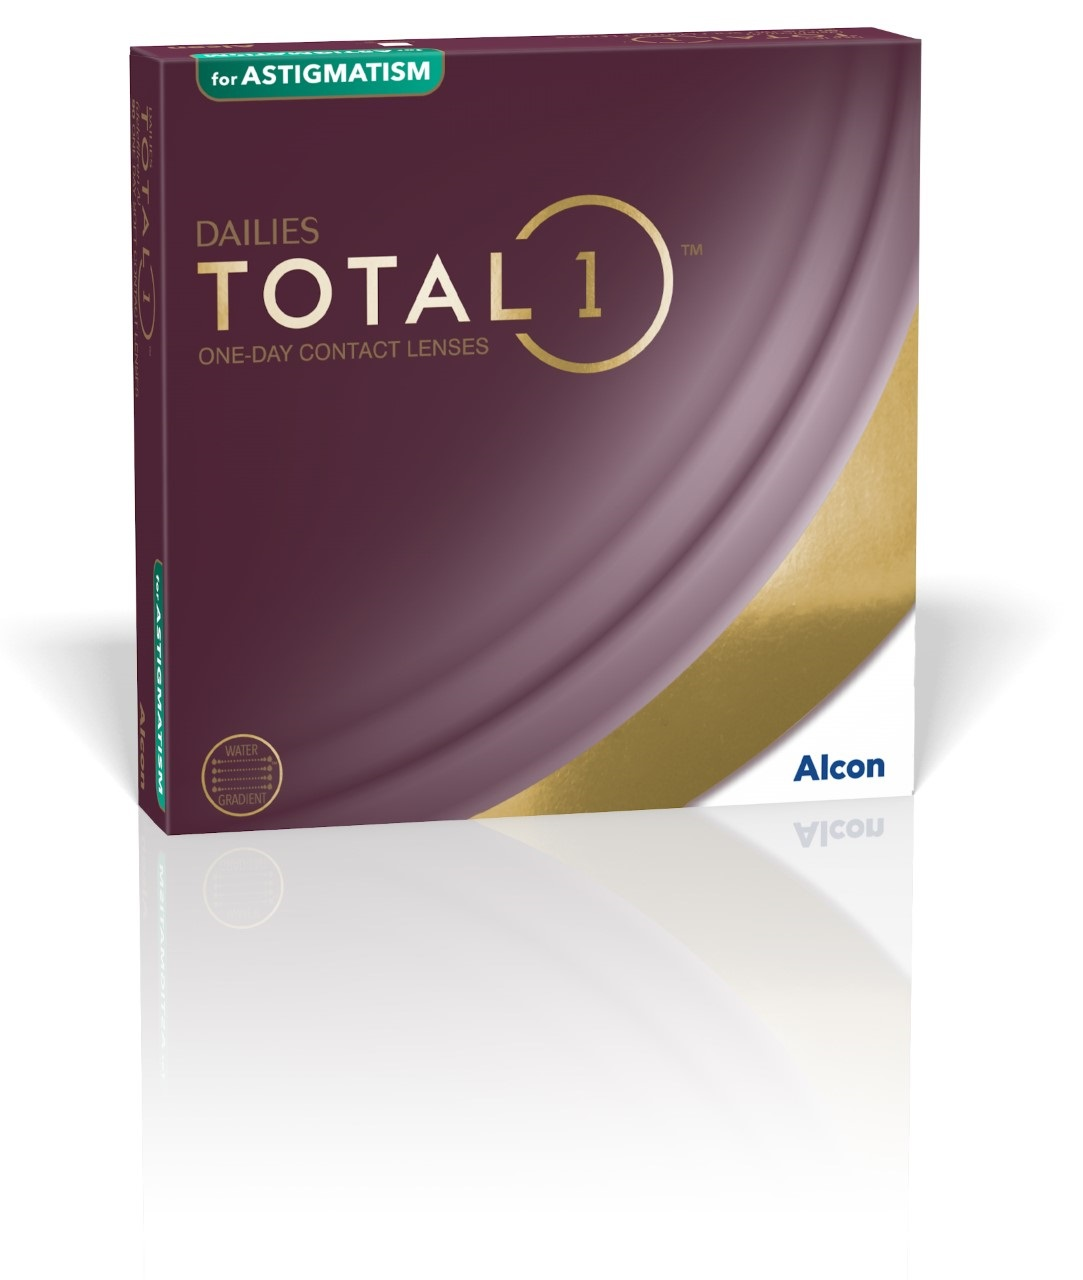 DAILIES TOTAL 1 Toric 90 product image